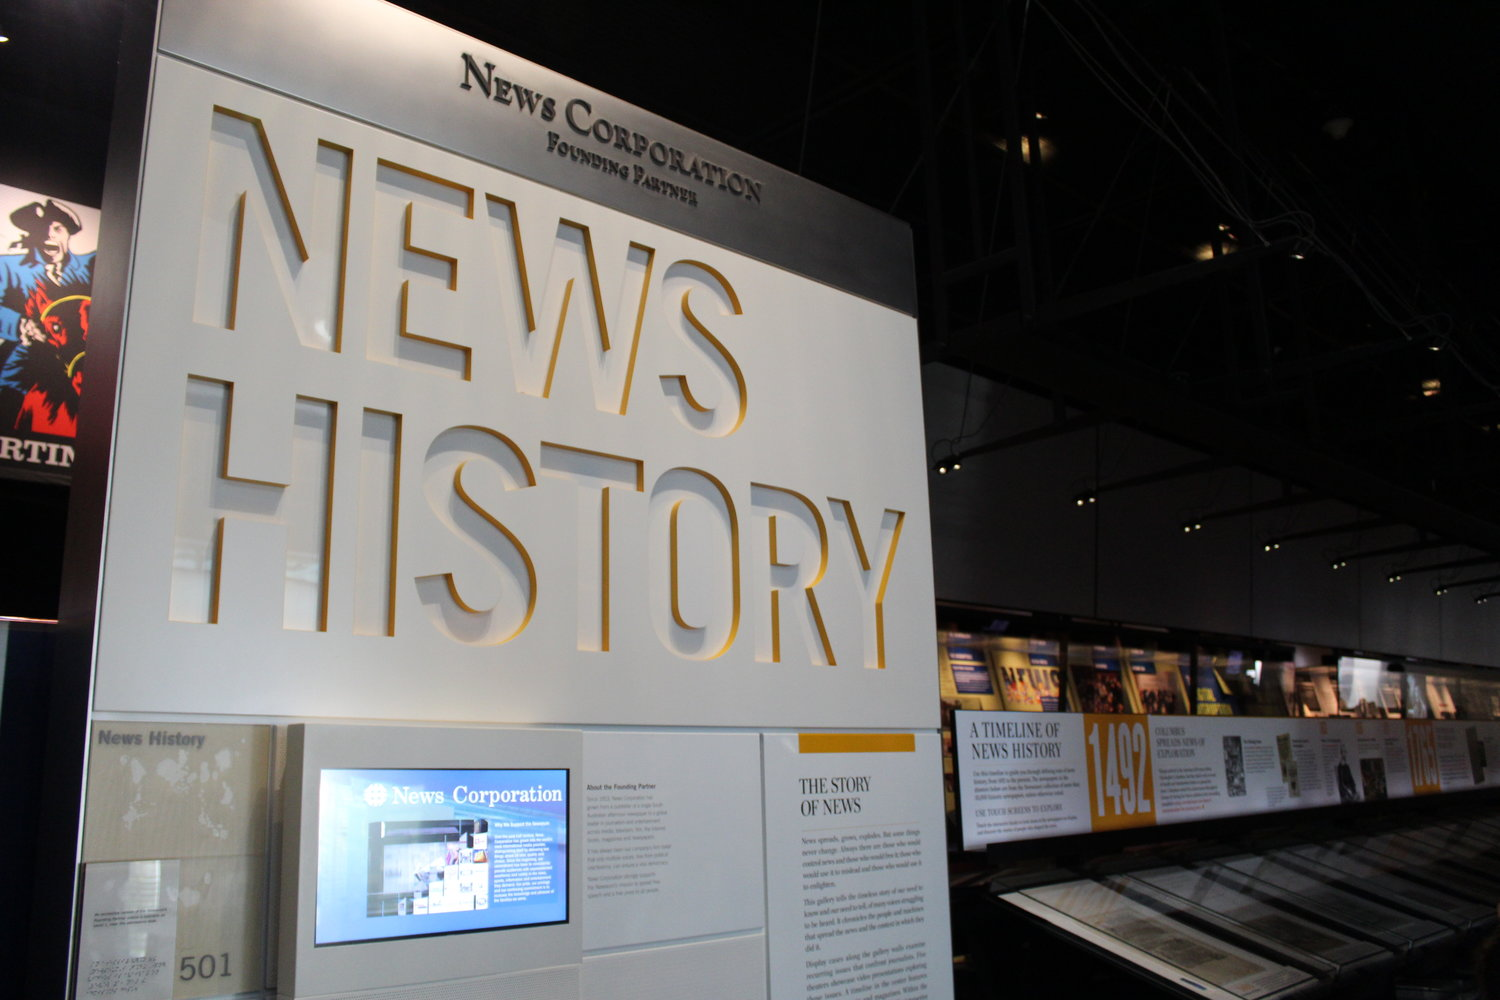 A timeline on Level 5 showcases nearly 400 historic newspaper front pages, newsbooks and magazines from the Newseum's collection, covering more than 500 years of news history.